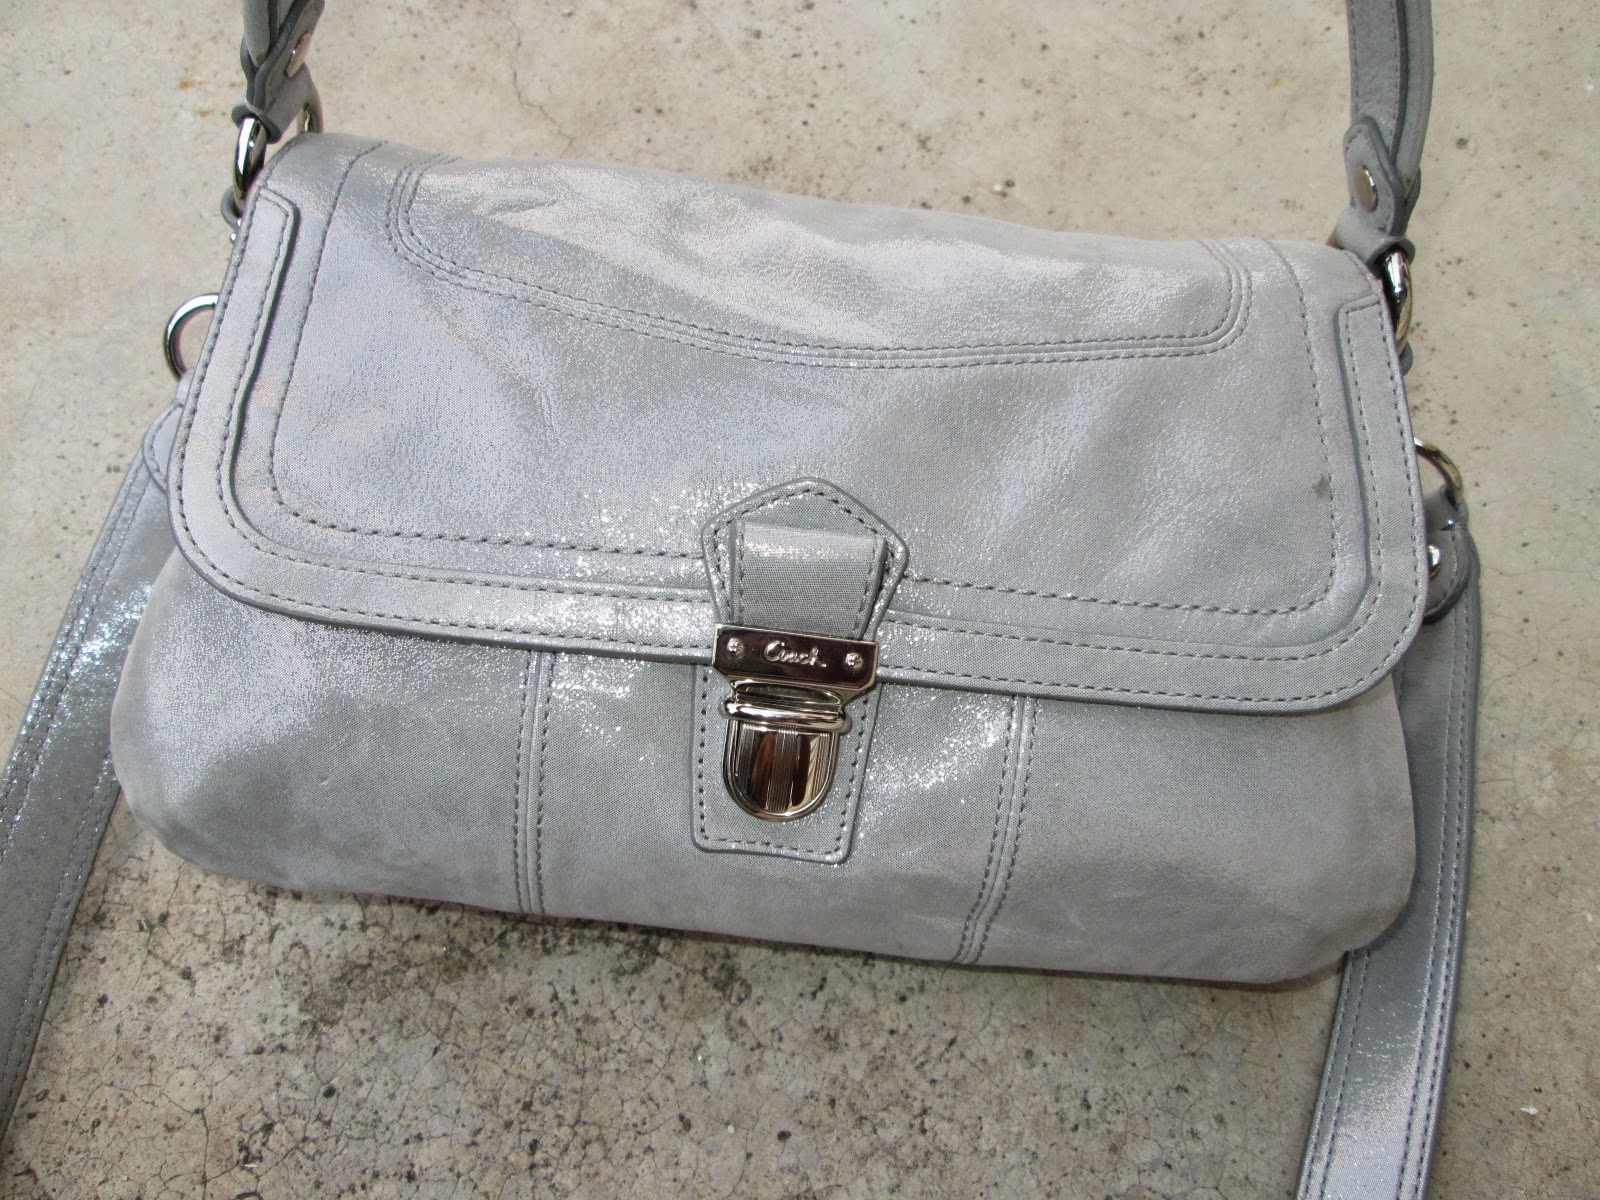 d0rayakEEbaG: Authentic Coach POPPY Shoulder/Sling Bag(SOLD)